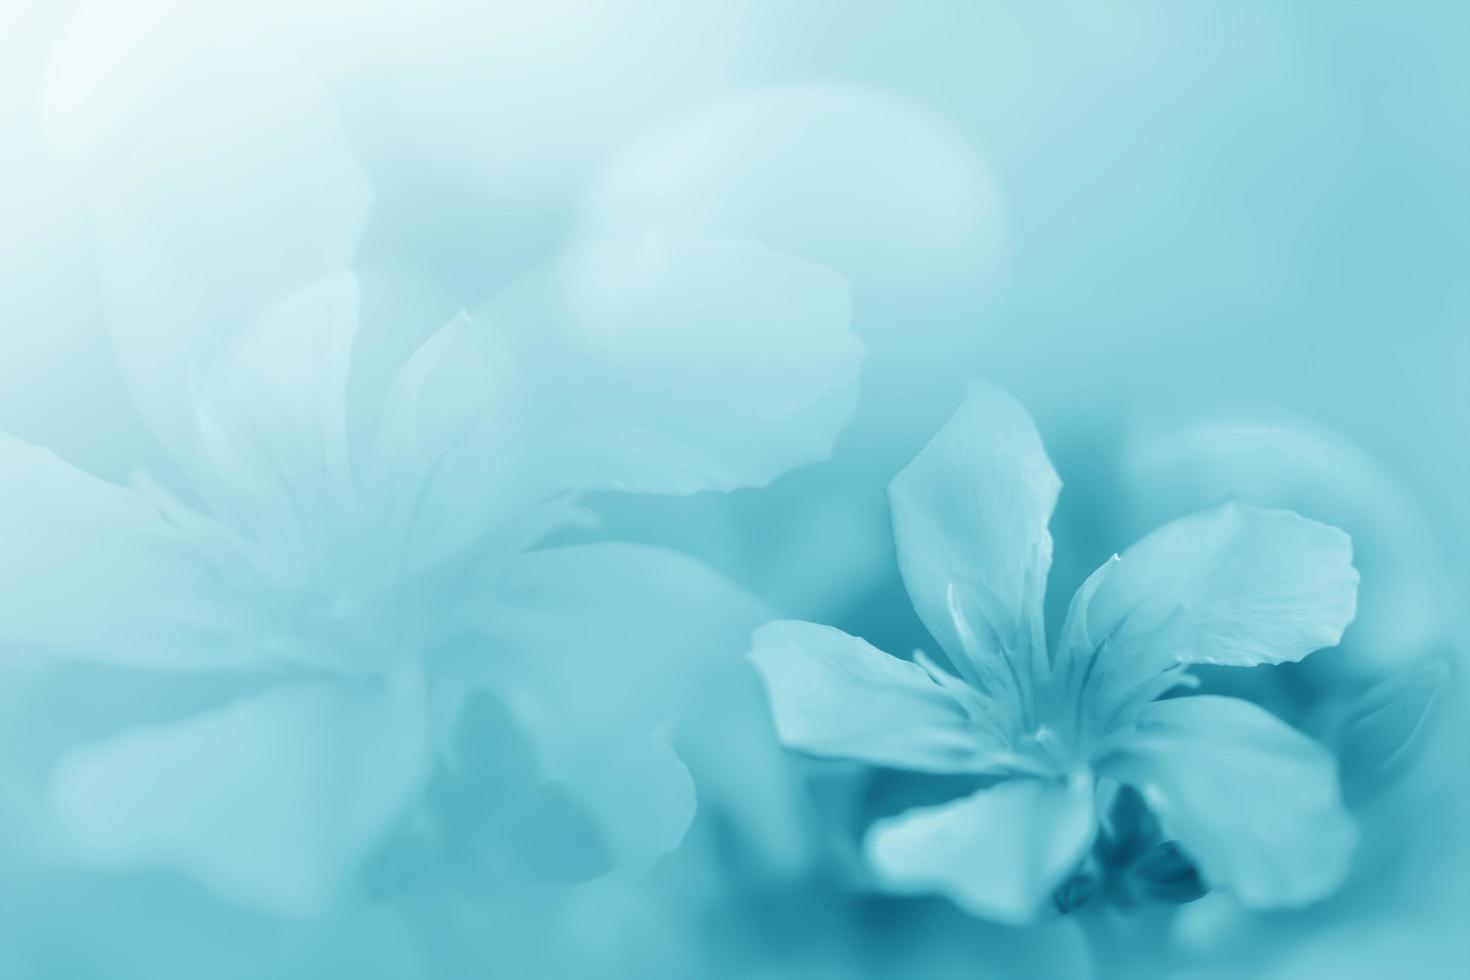 Pastel blue green beautiful spring flower bloom branch background with free copy space for greeting card or environment cover page, template, web banner and header. photo